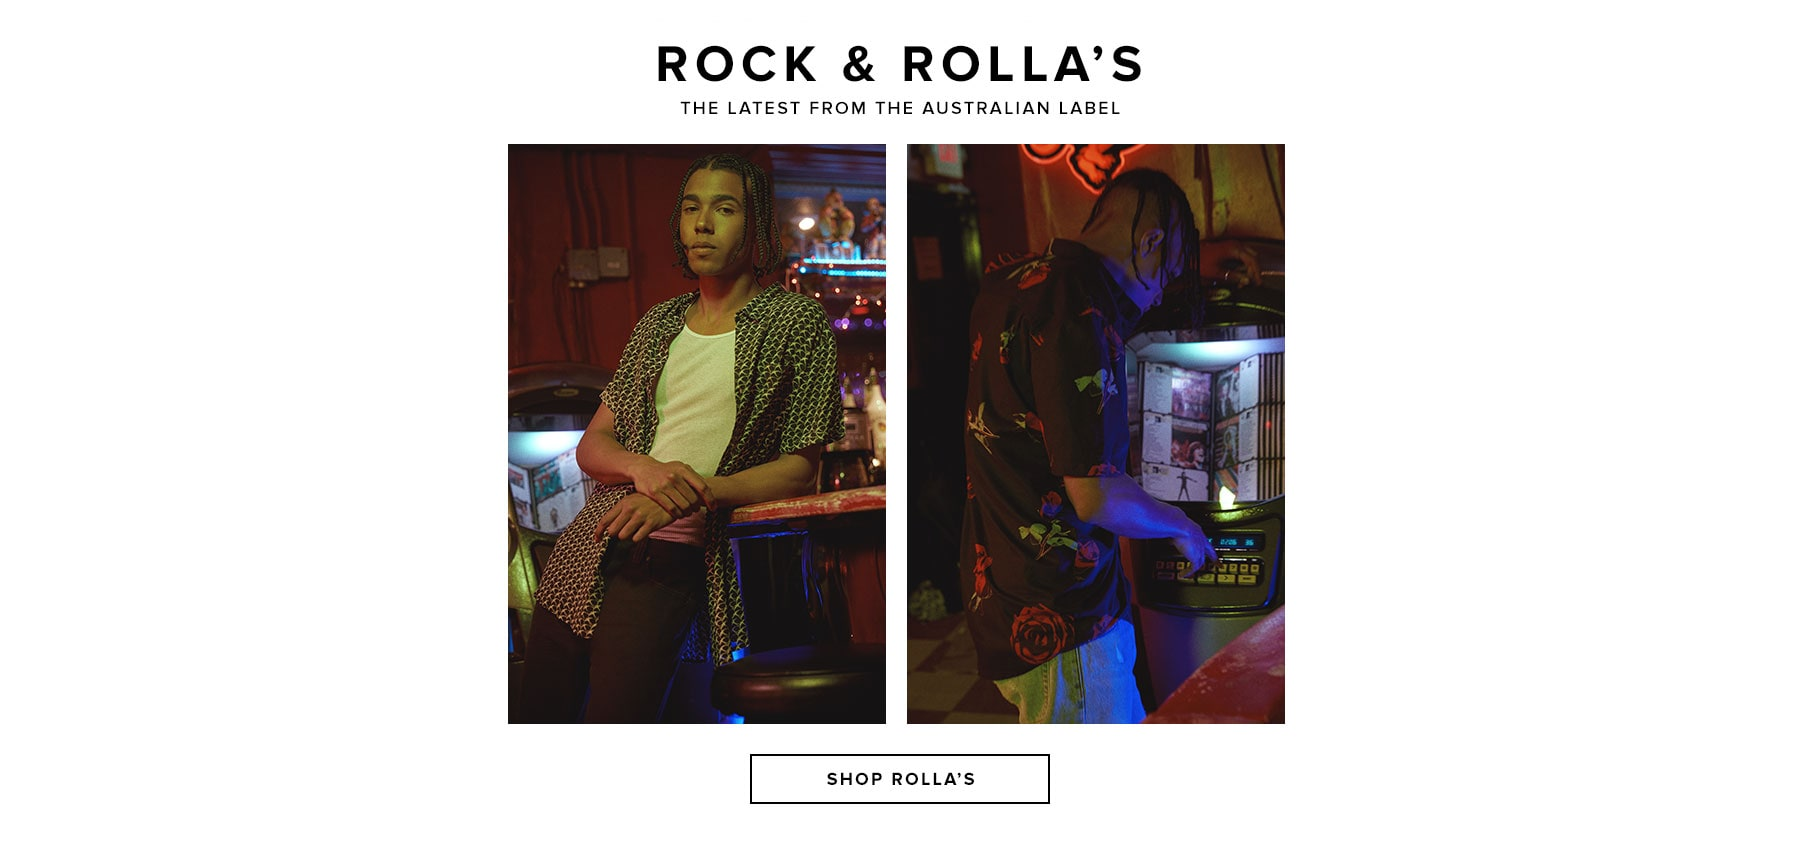 Rock & Rollas. The latest from the Australian label. Shop Rollas.